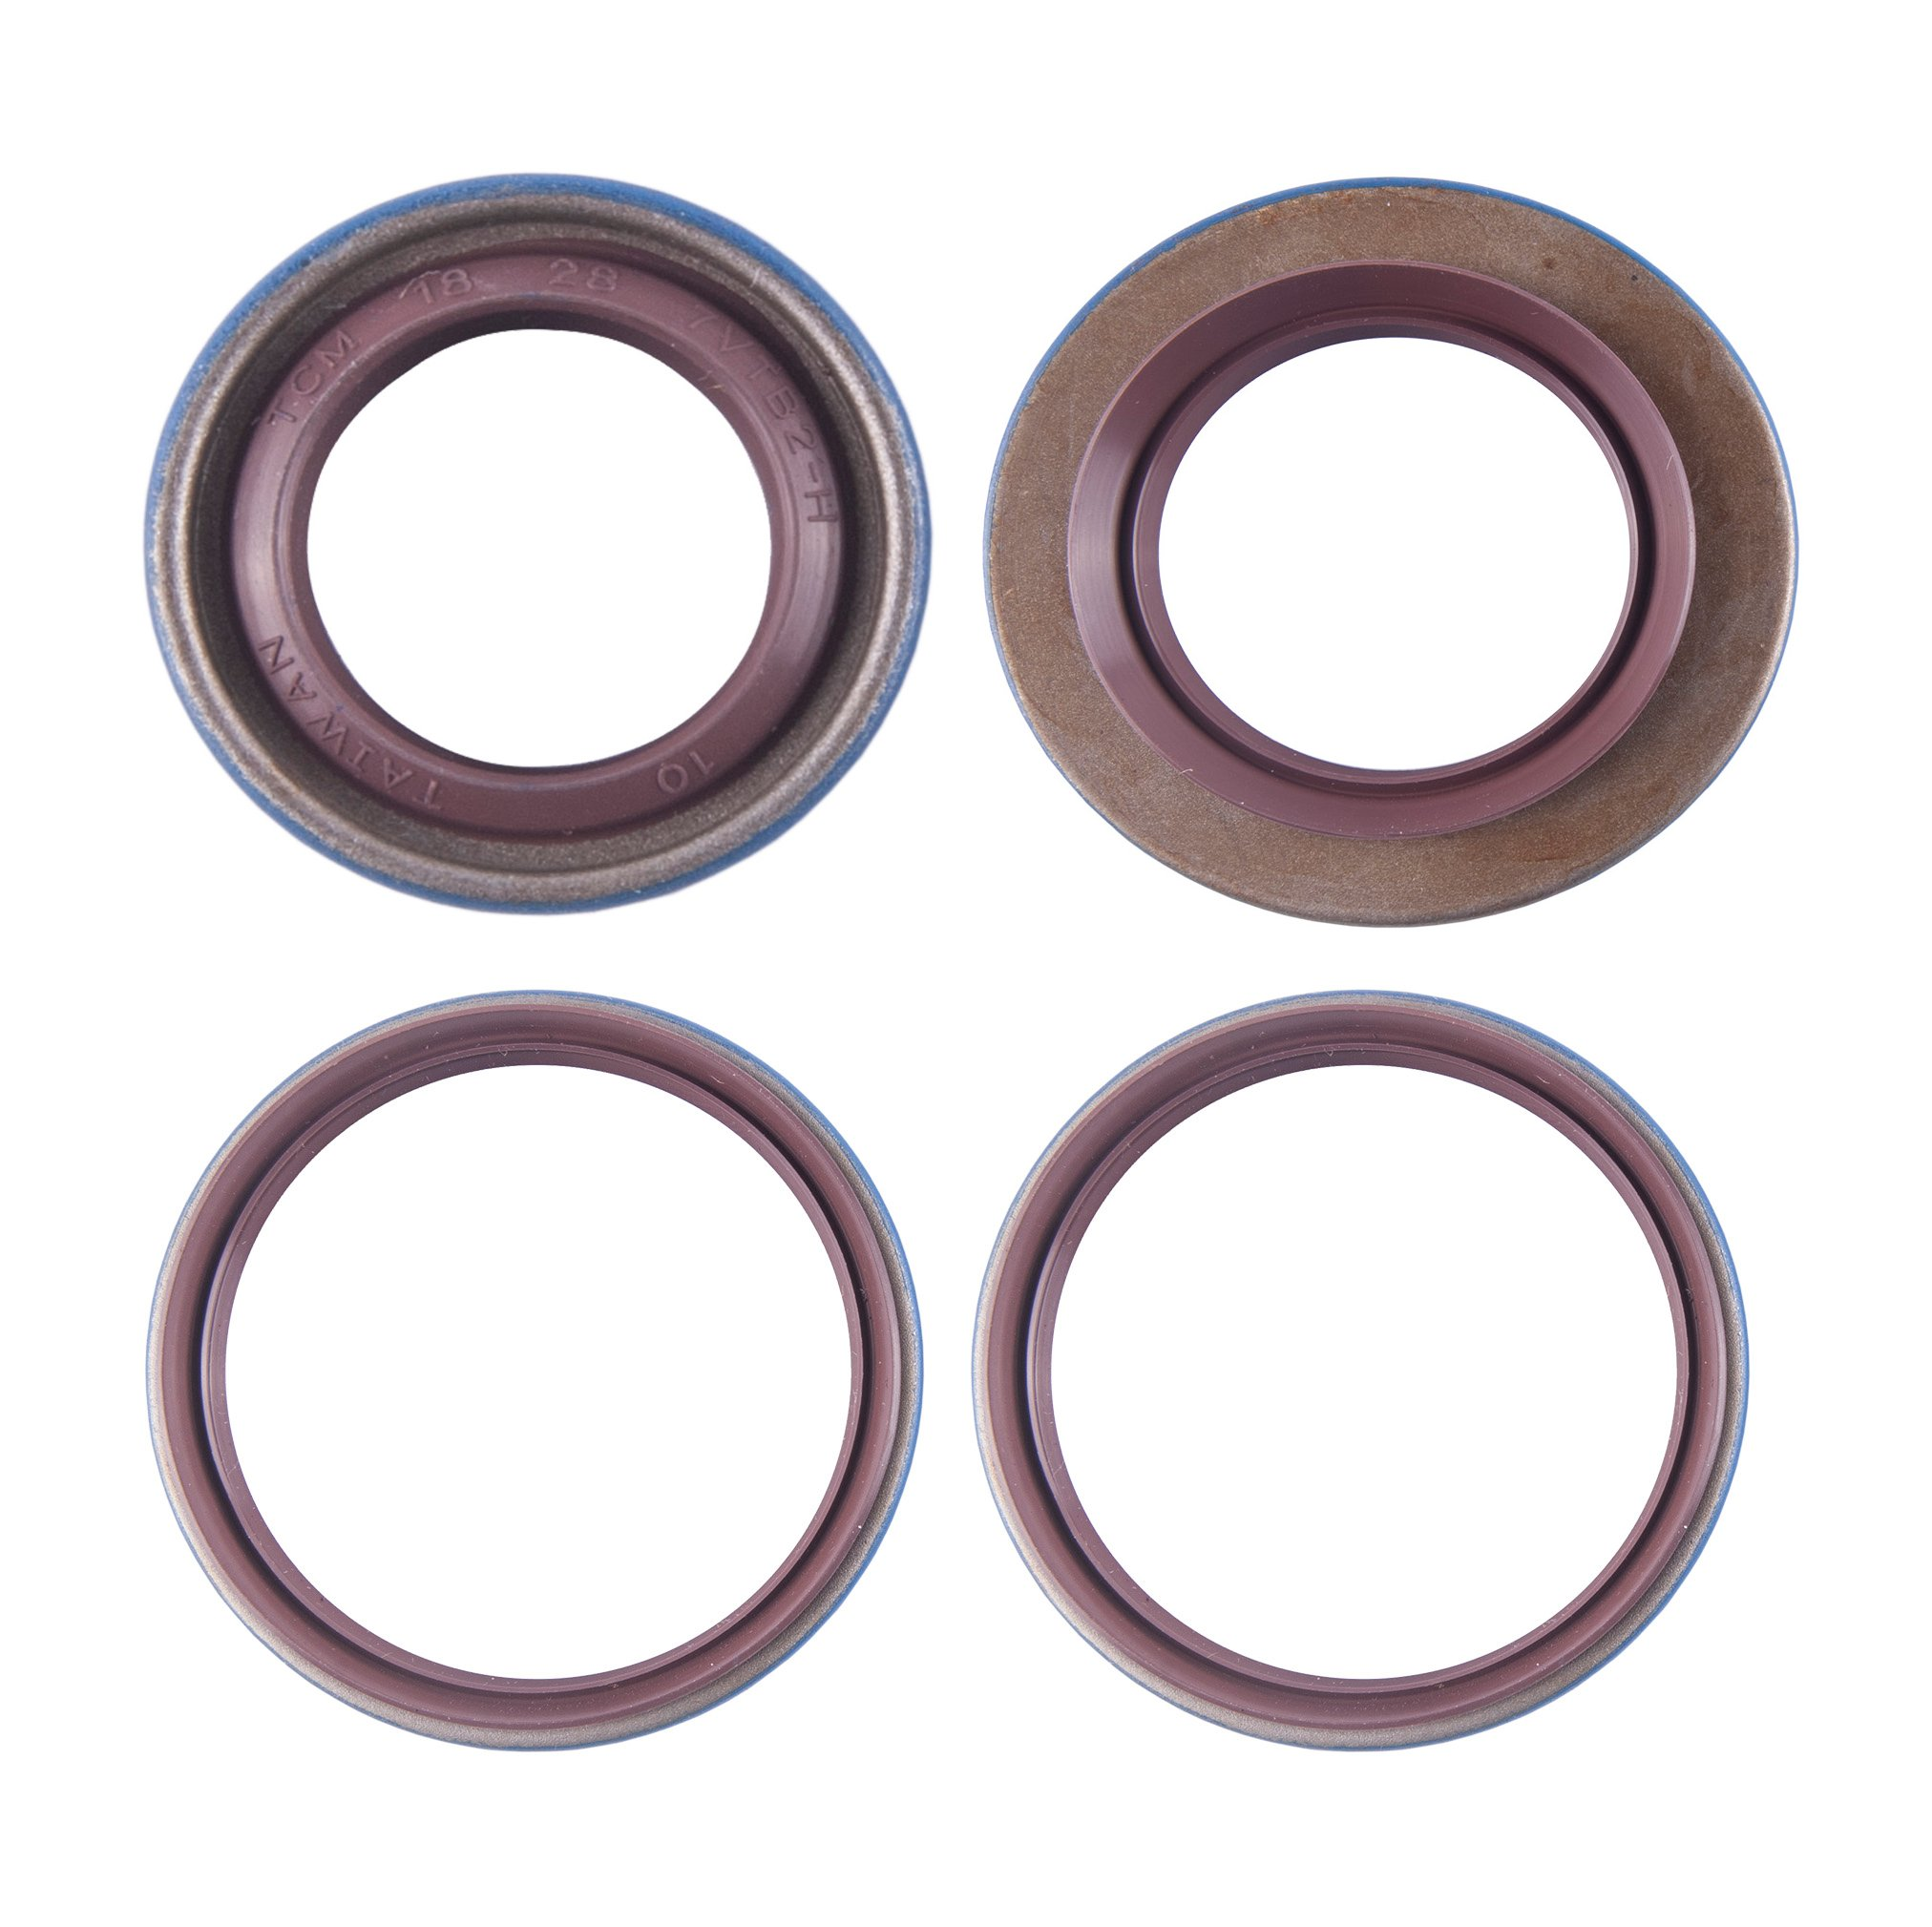 Yamaha 350/450 Grizzly rear differential seal kit 2007 2008 2009 2010 2011